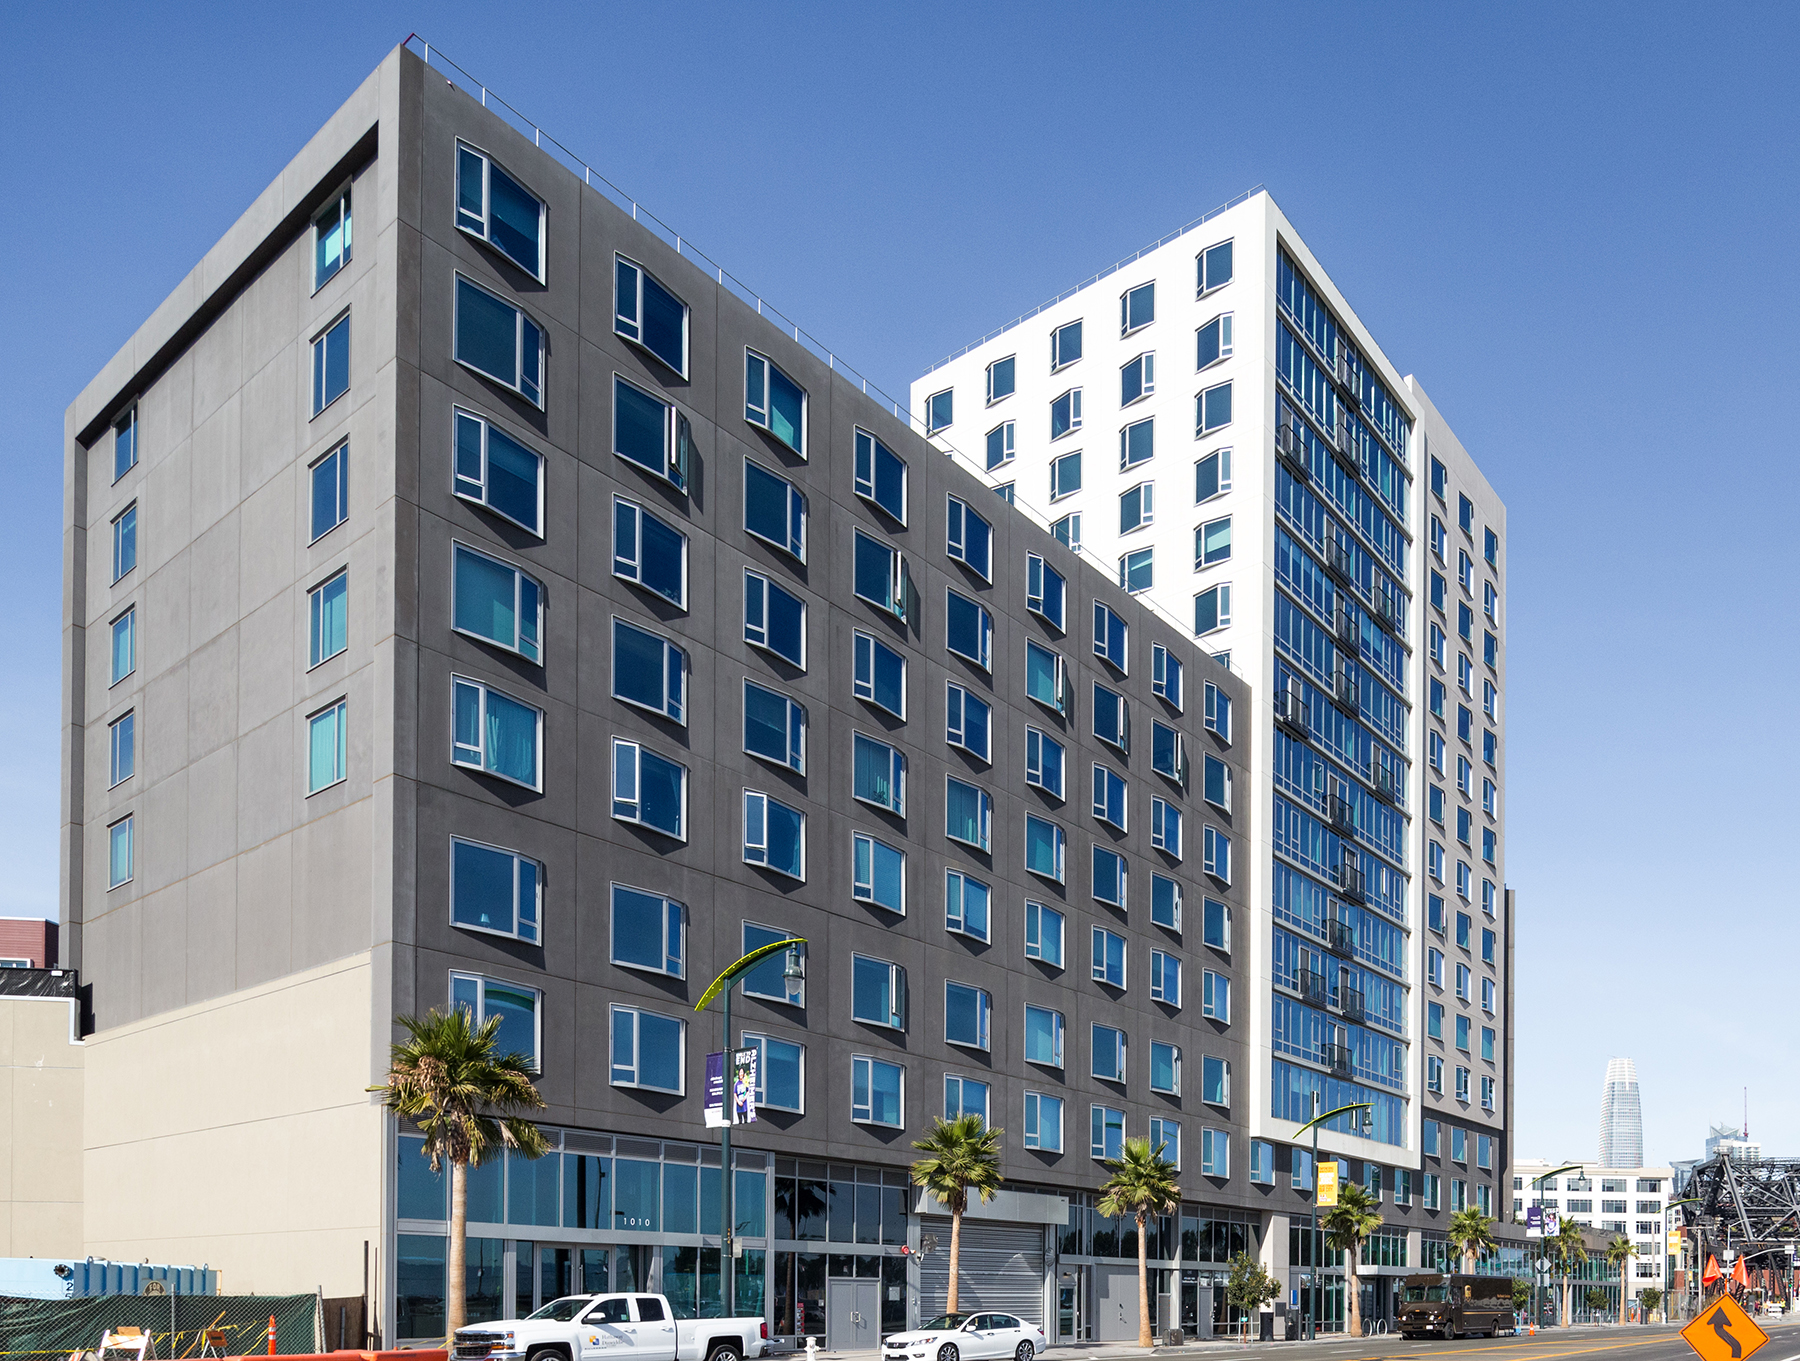 Mission Bay Block1_5a.jpg